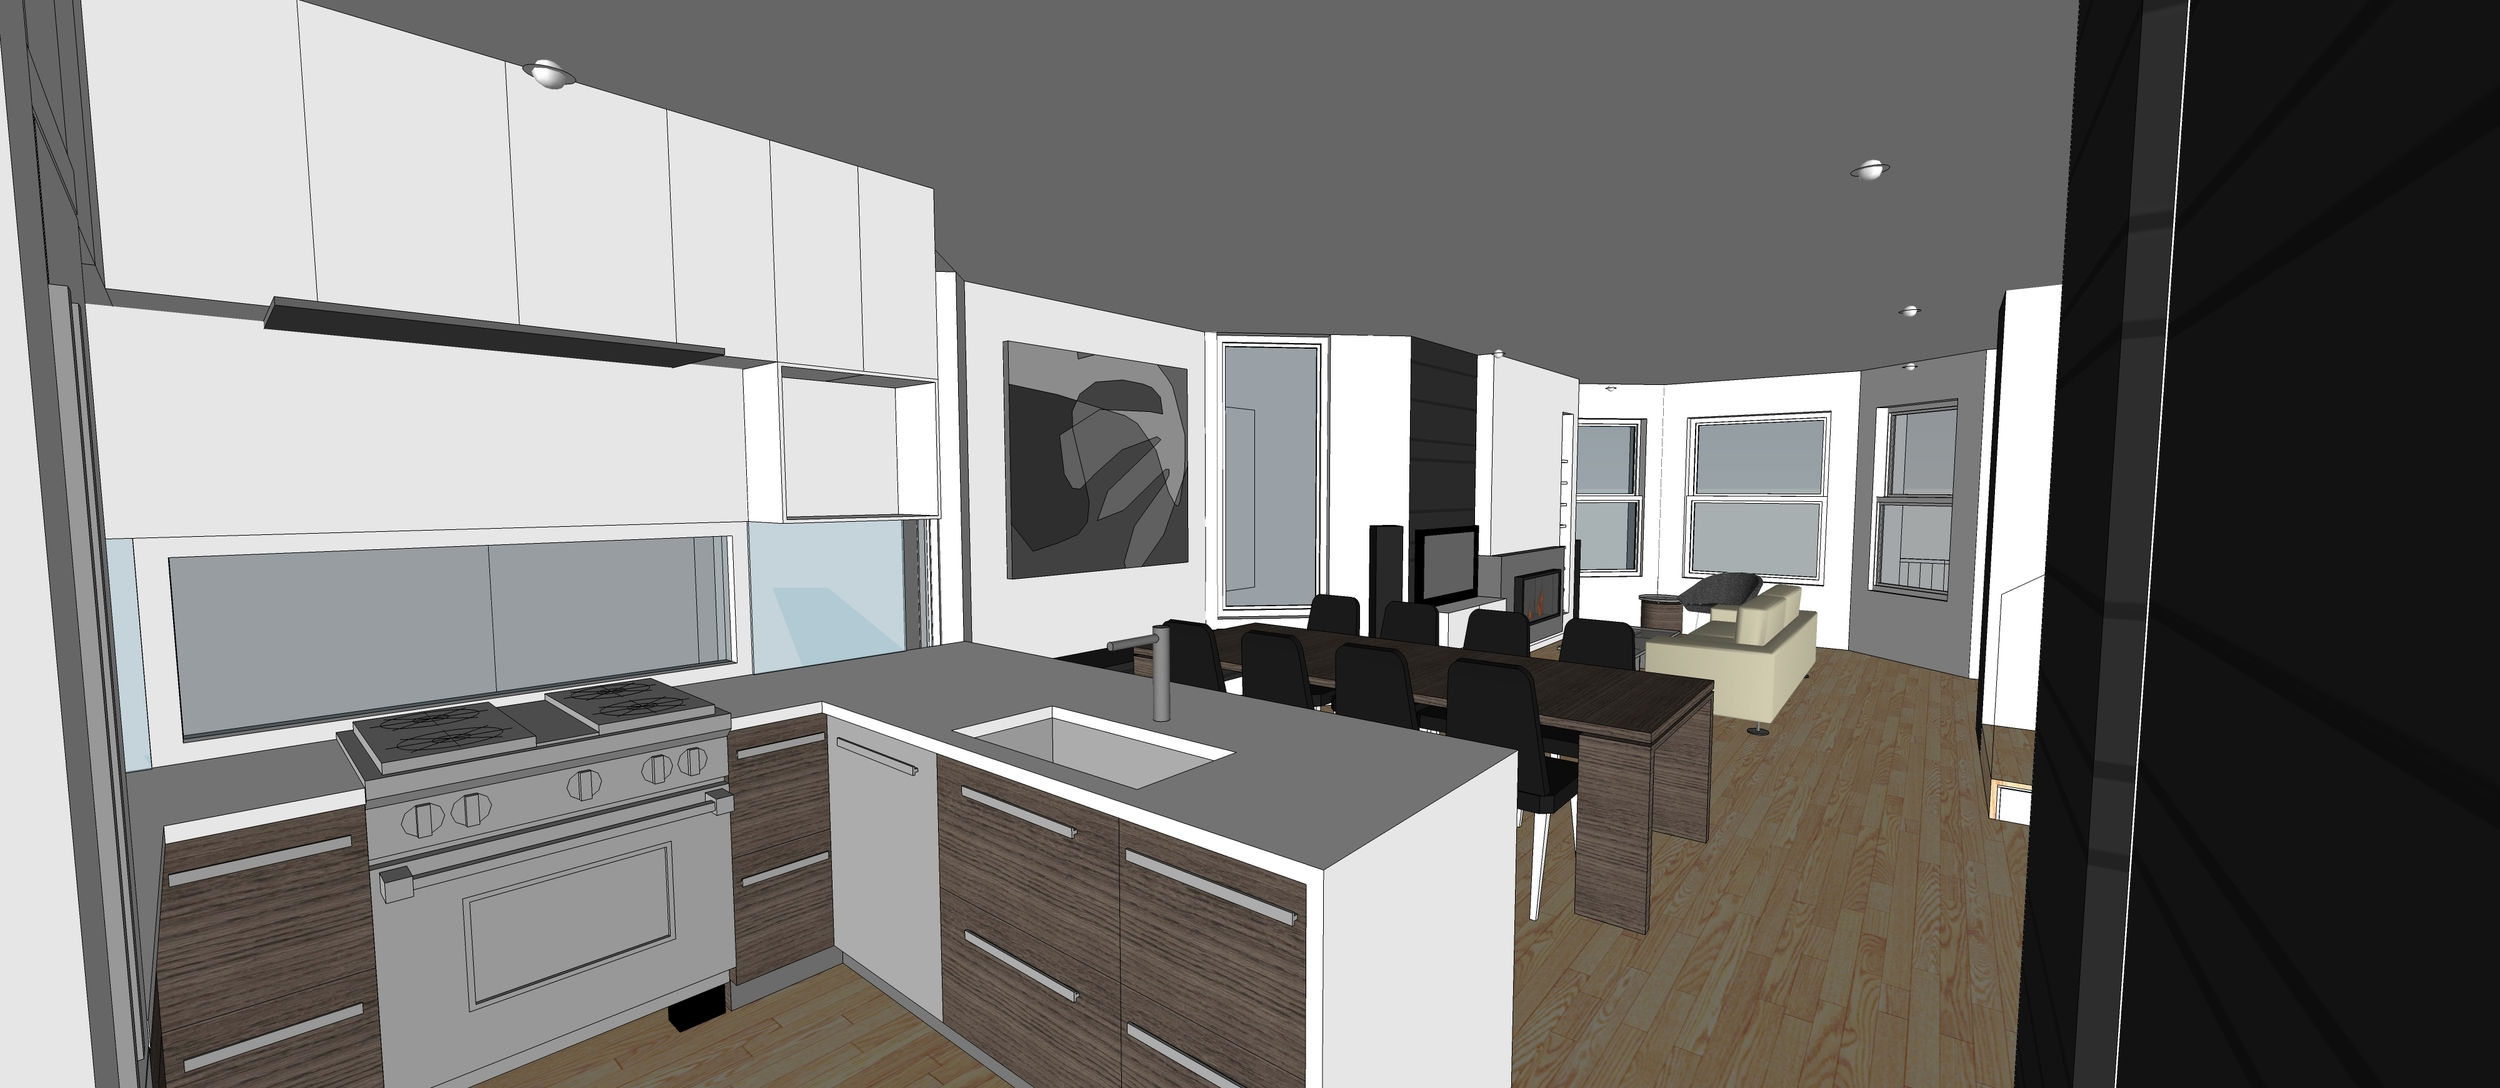 2 Point Perspective - Andersonville Residence (Kitchen).jpg